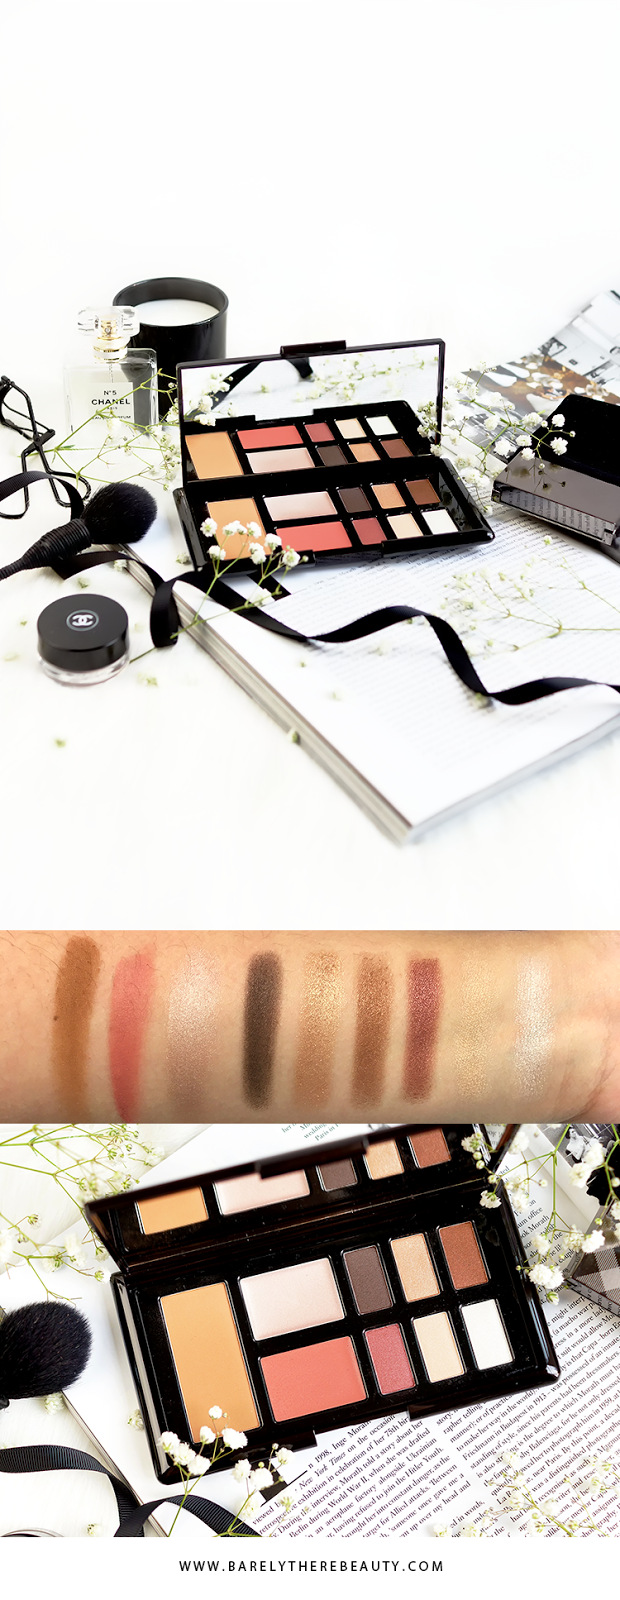 M-&-S-rosie-for-autograph-eye-cheek-palette-2016-review-swatches-barely-there-beauty-blog